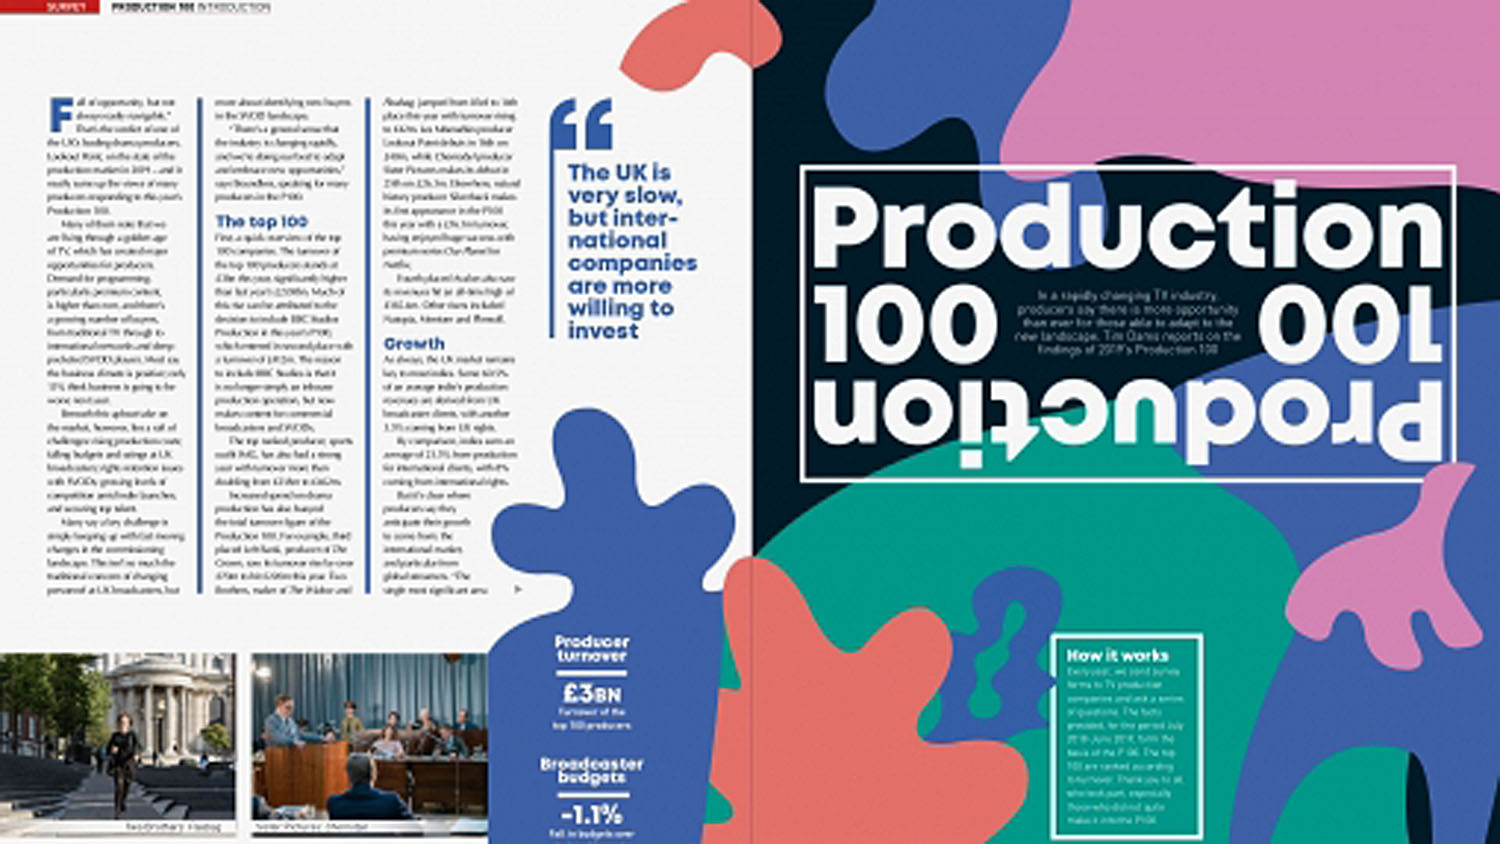 Televisual Production 100: results now published